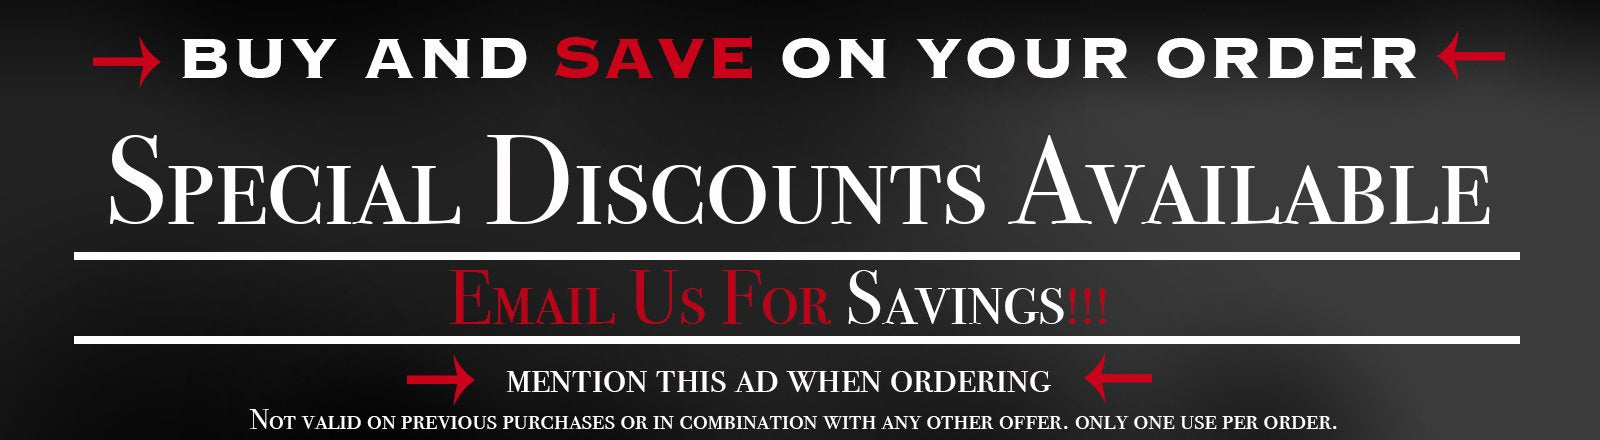 Email us for savings!